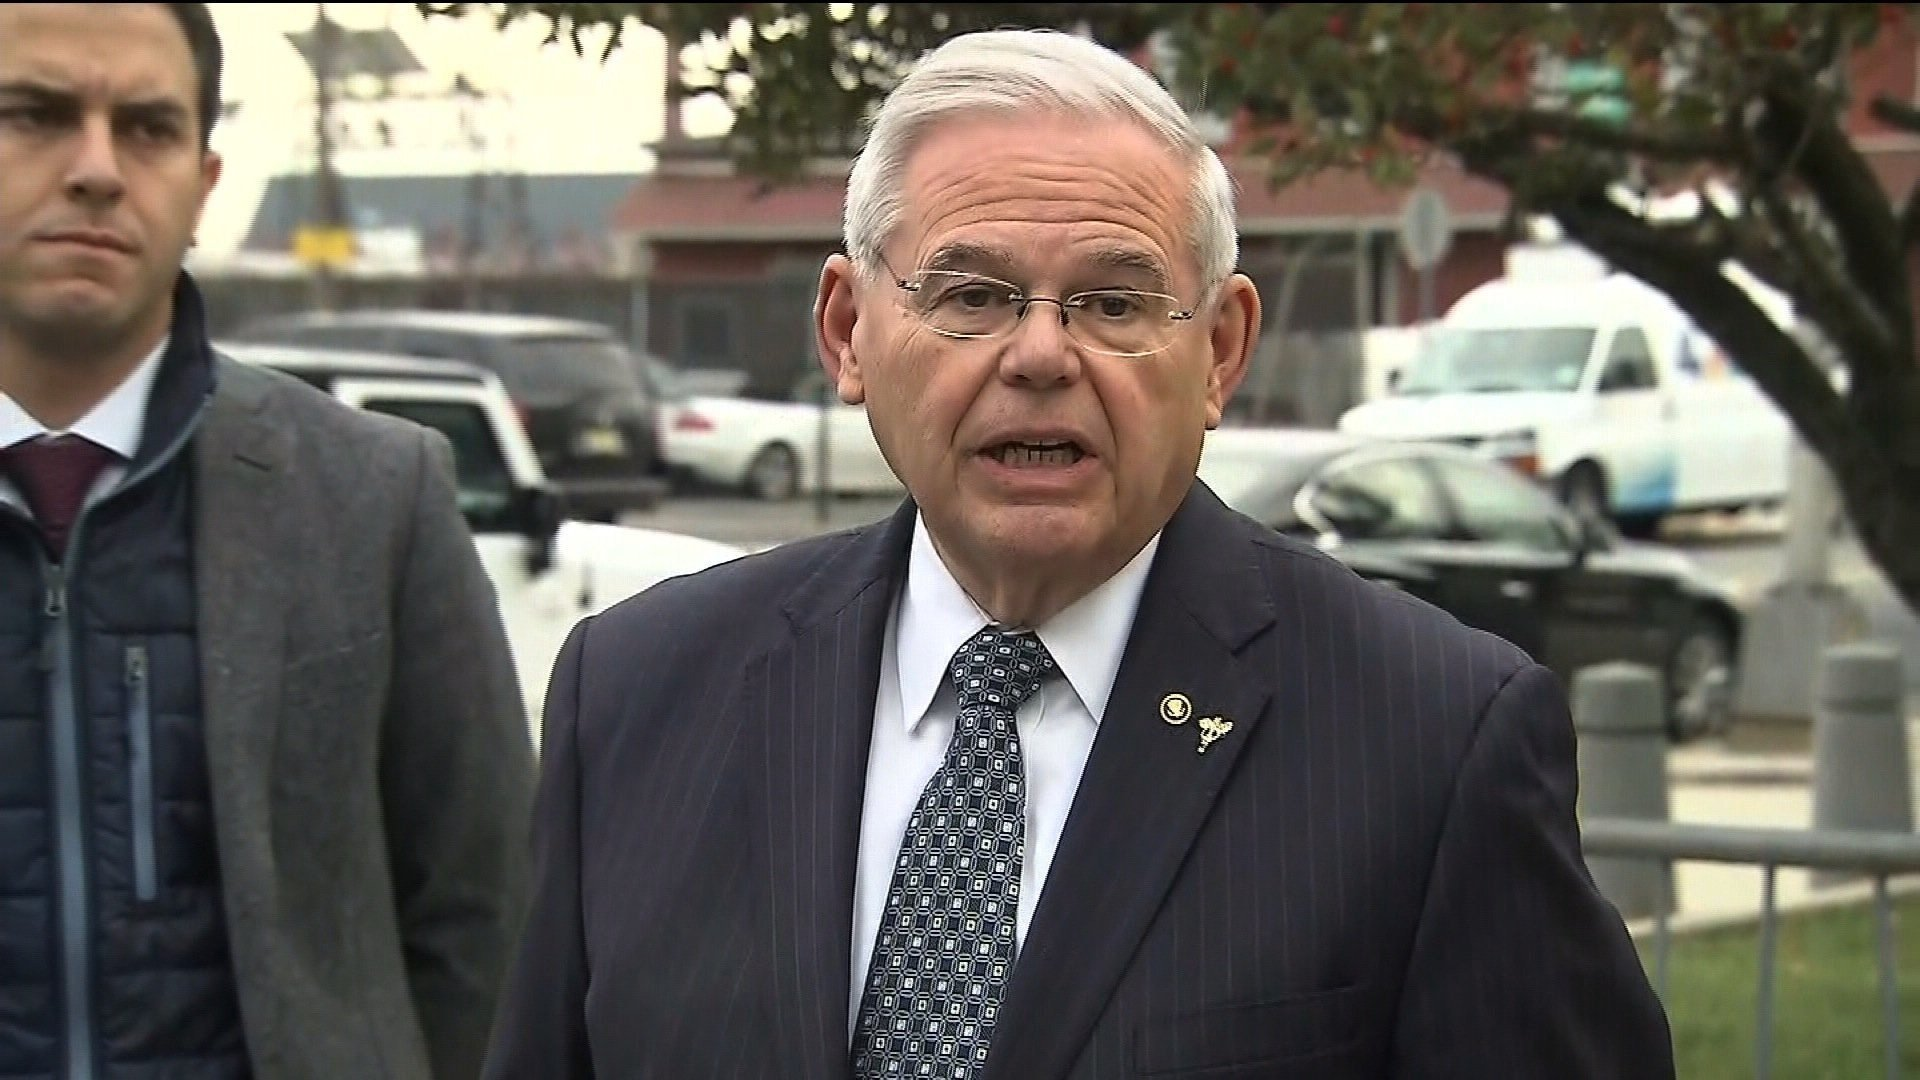 Feds drop corruption case against Sen. Robert Menendez D